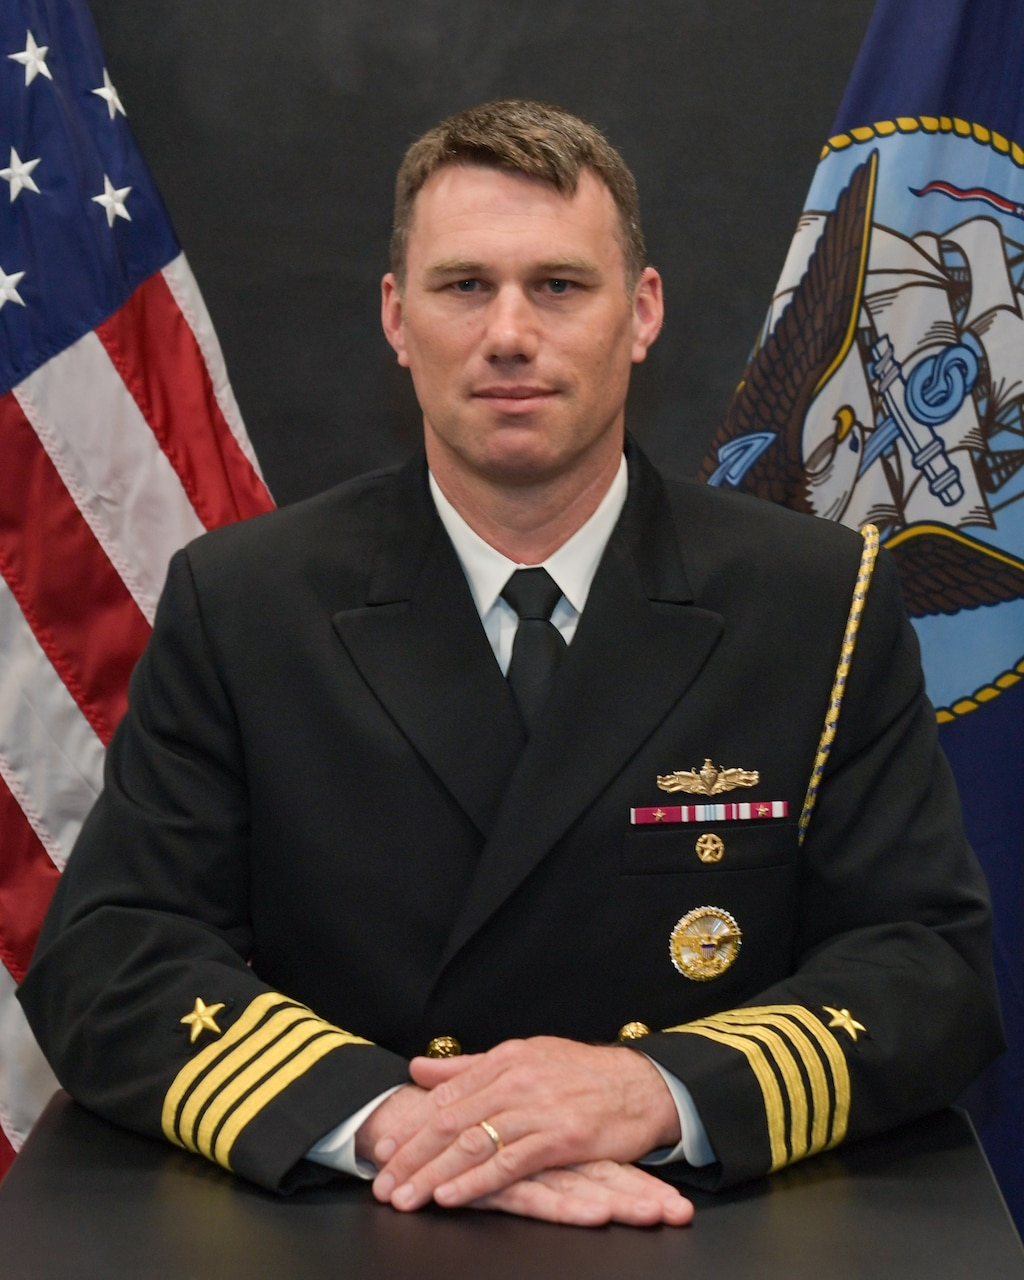 Studio portrait of Capt. Todd Whalen